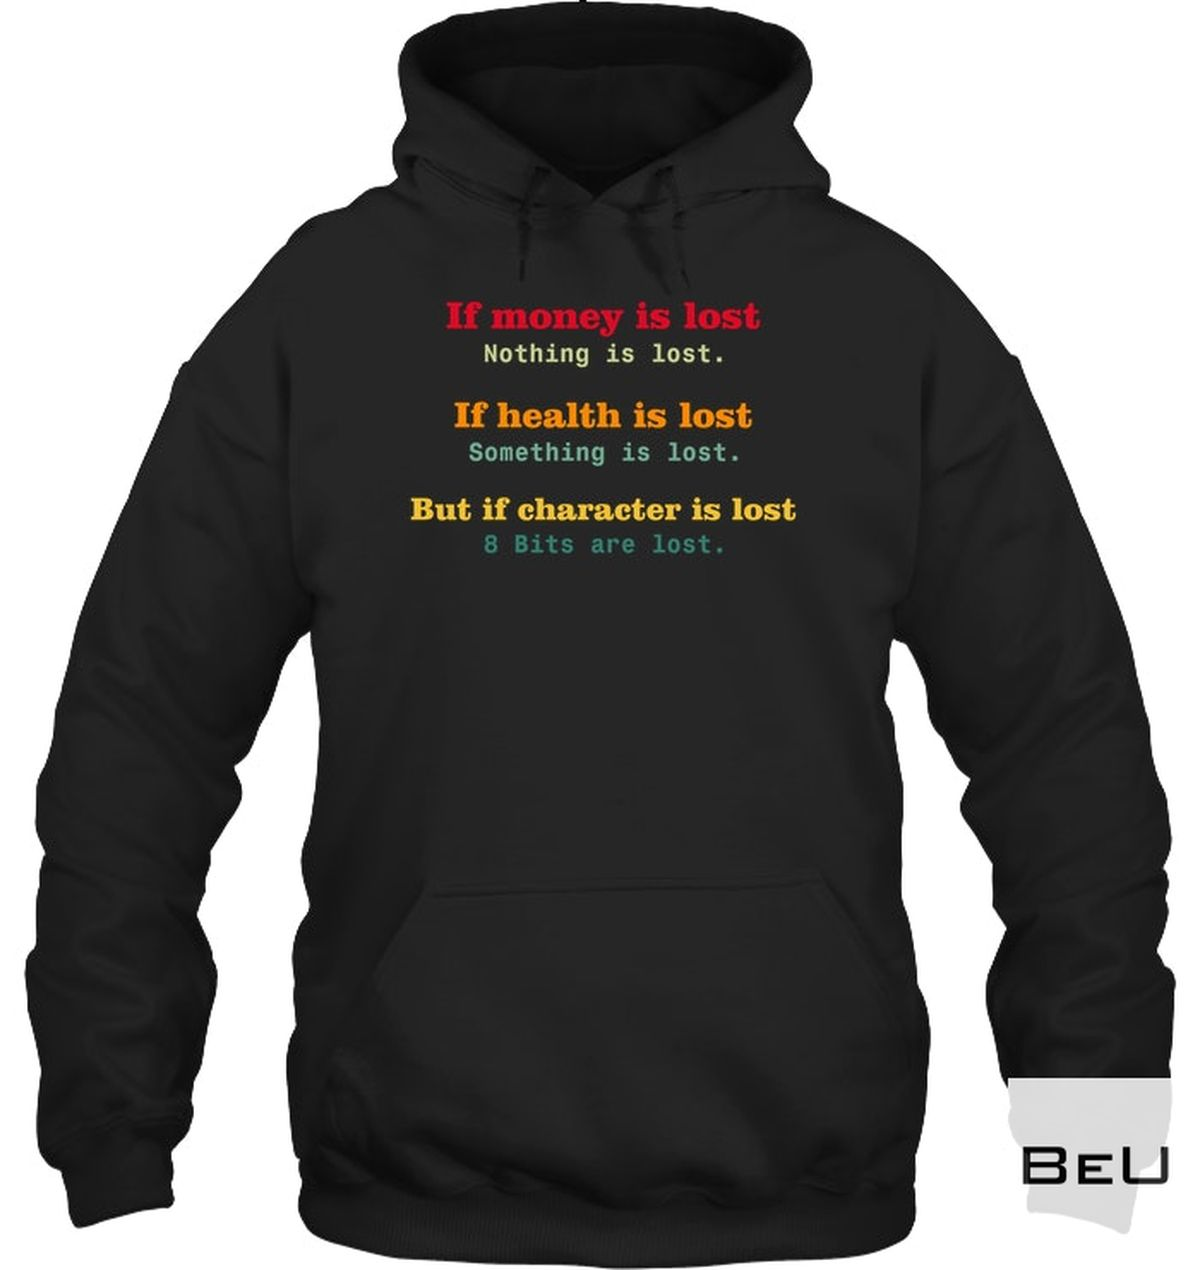 Funny Tee If Health Is Lost Something Is Lost But If Character Is Lost 8 Bits Are Lost Shirt